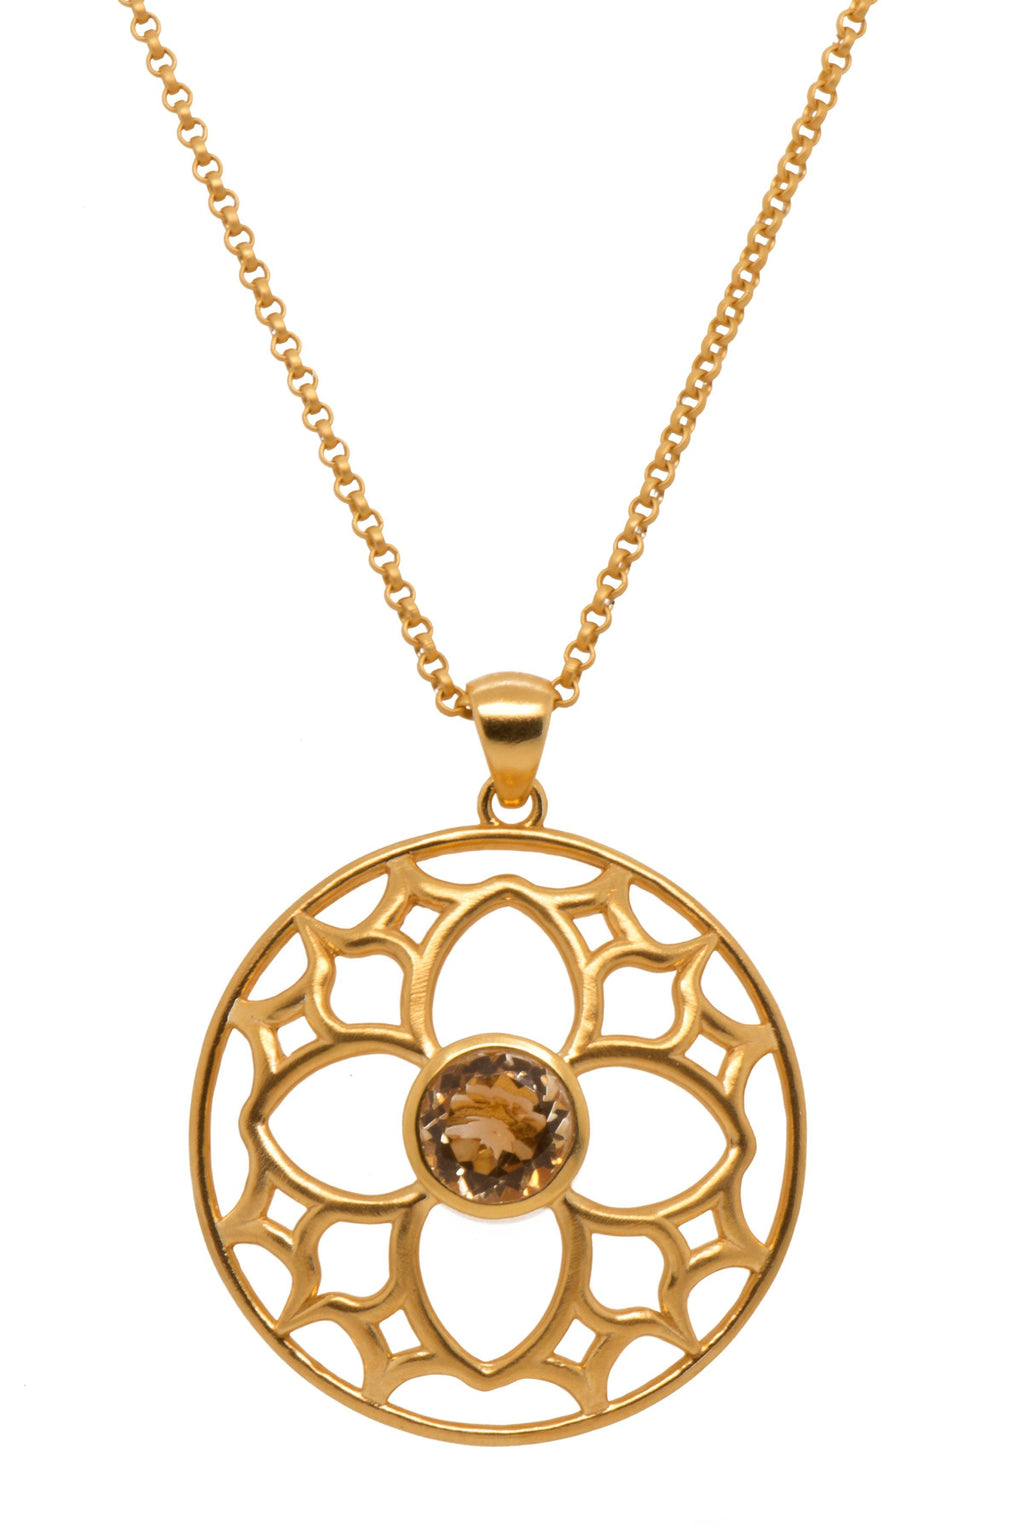 PENDANT- JOYFUL CIRCLE 40MM CITRINE (JOYFULP1CT)